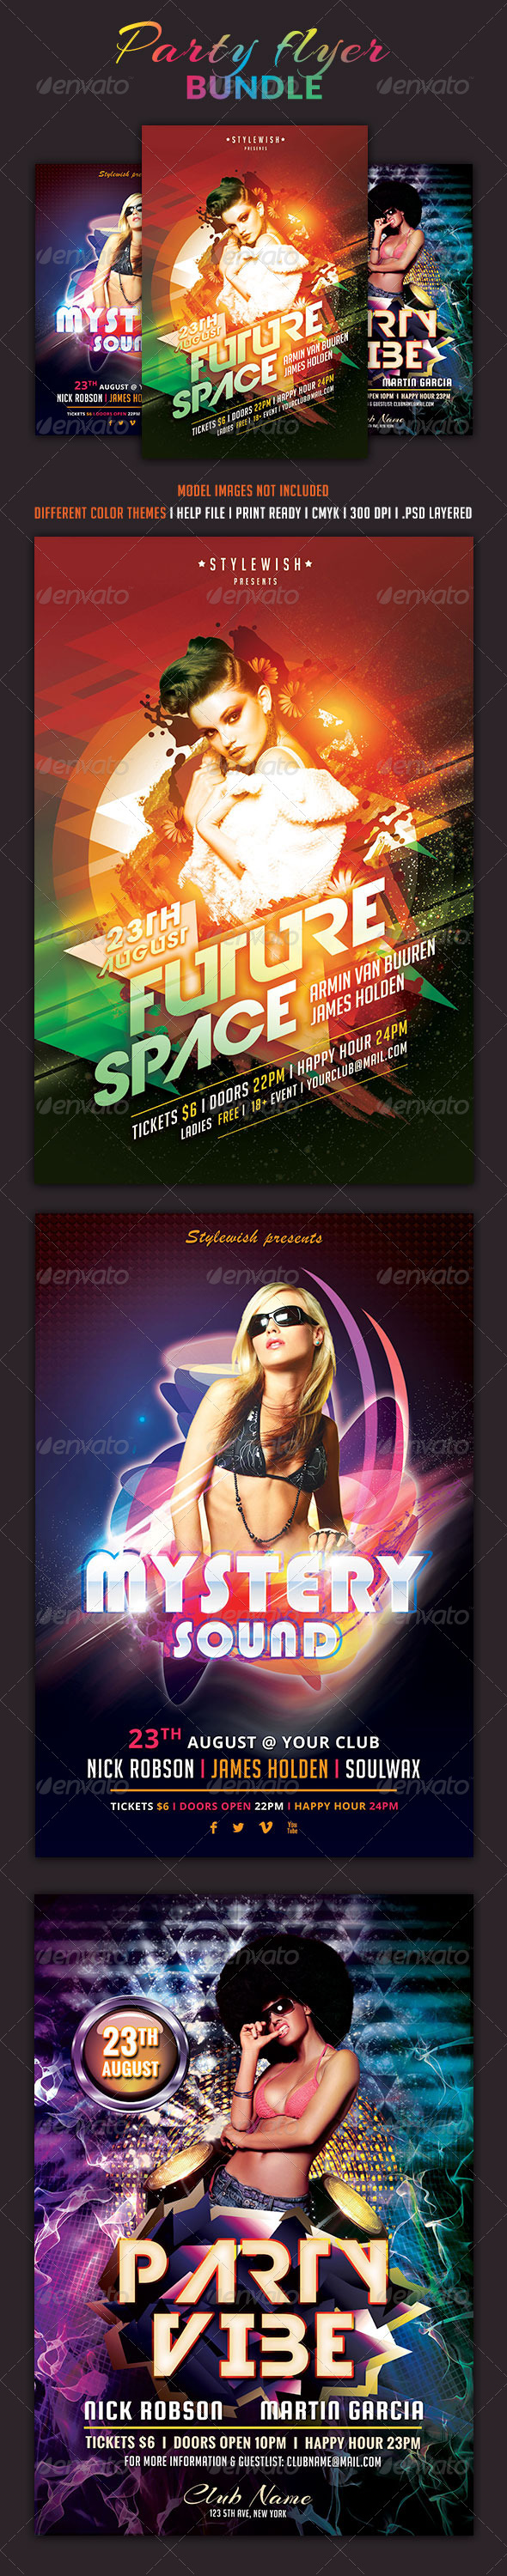 Party Flyer Bundle Vol4 - Clubs & Parties Events